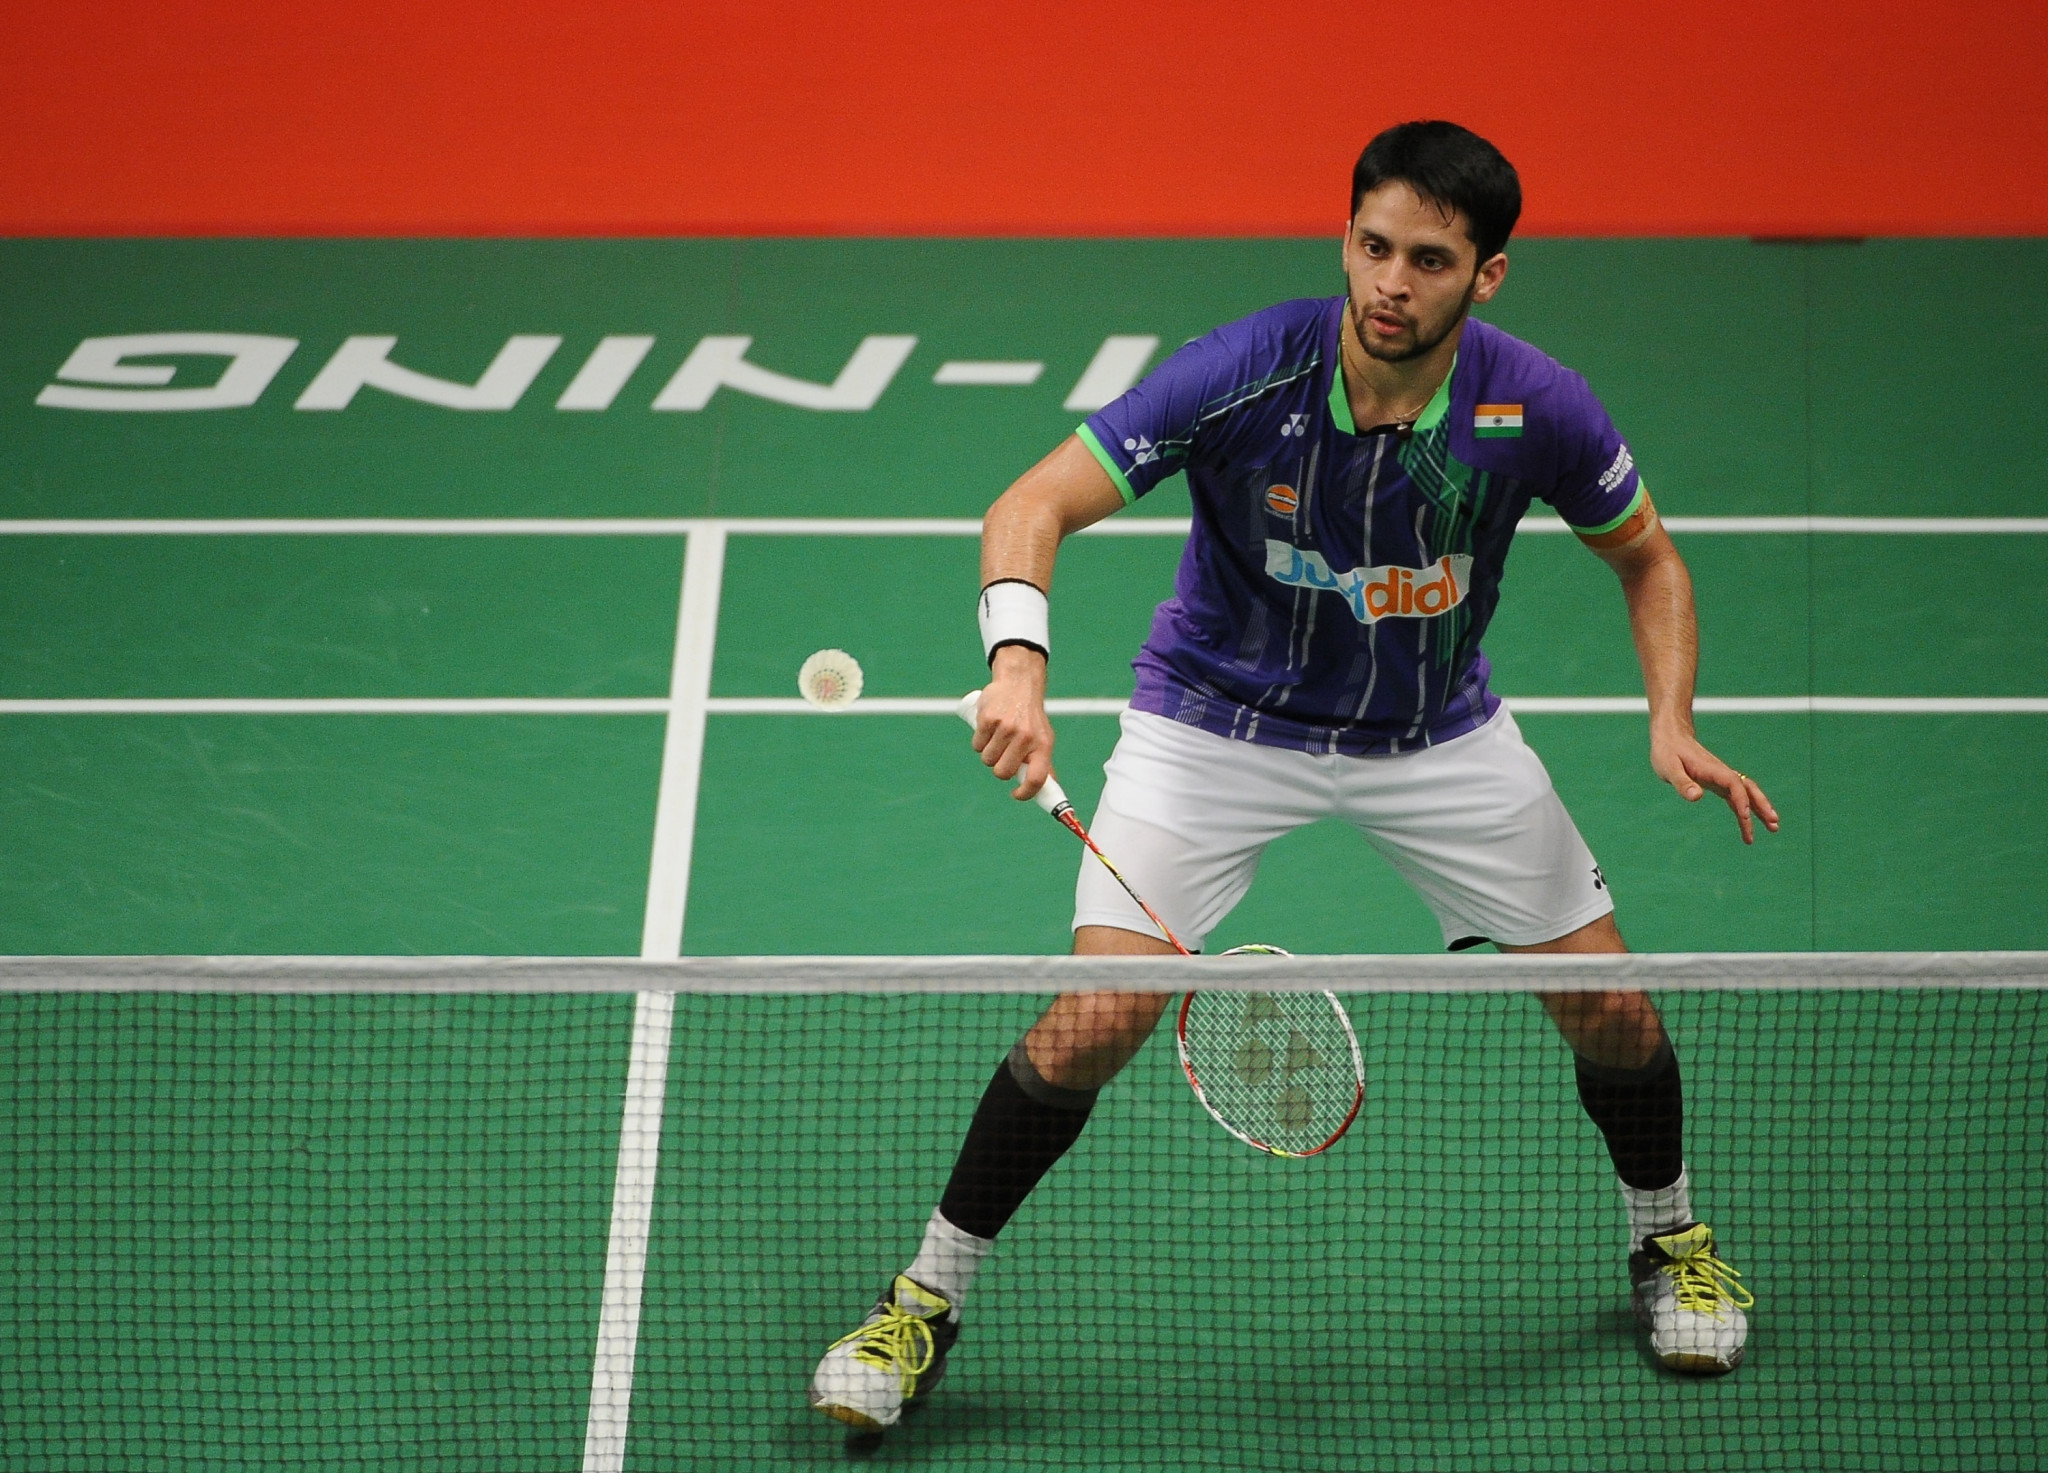 Glasgow 2014 Commonwealth Games champion Parupalli Kashyap criticised the new BWF calendar for 2020 ©Getty Images